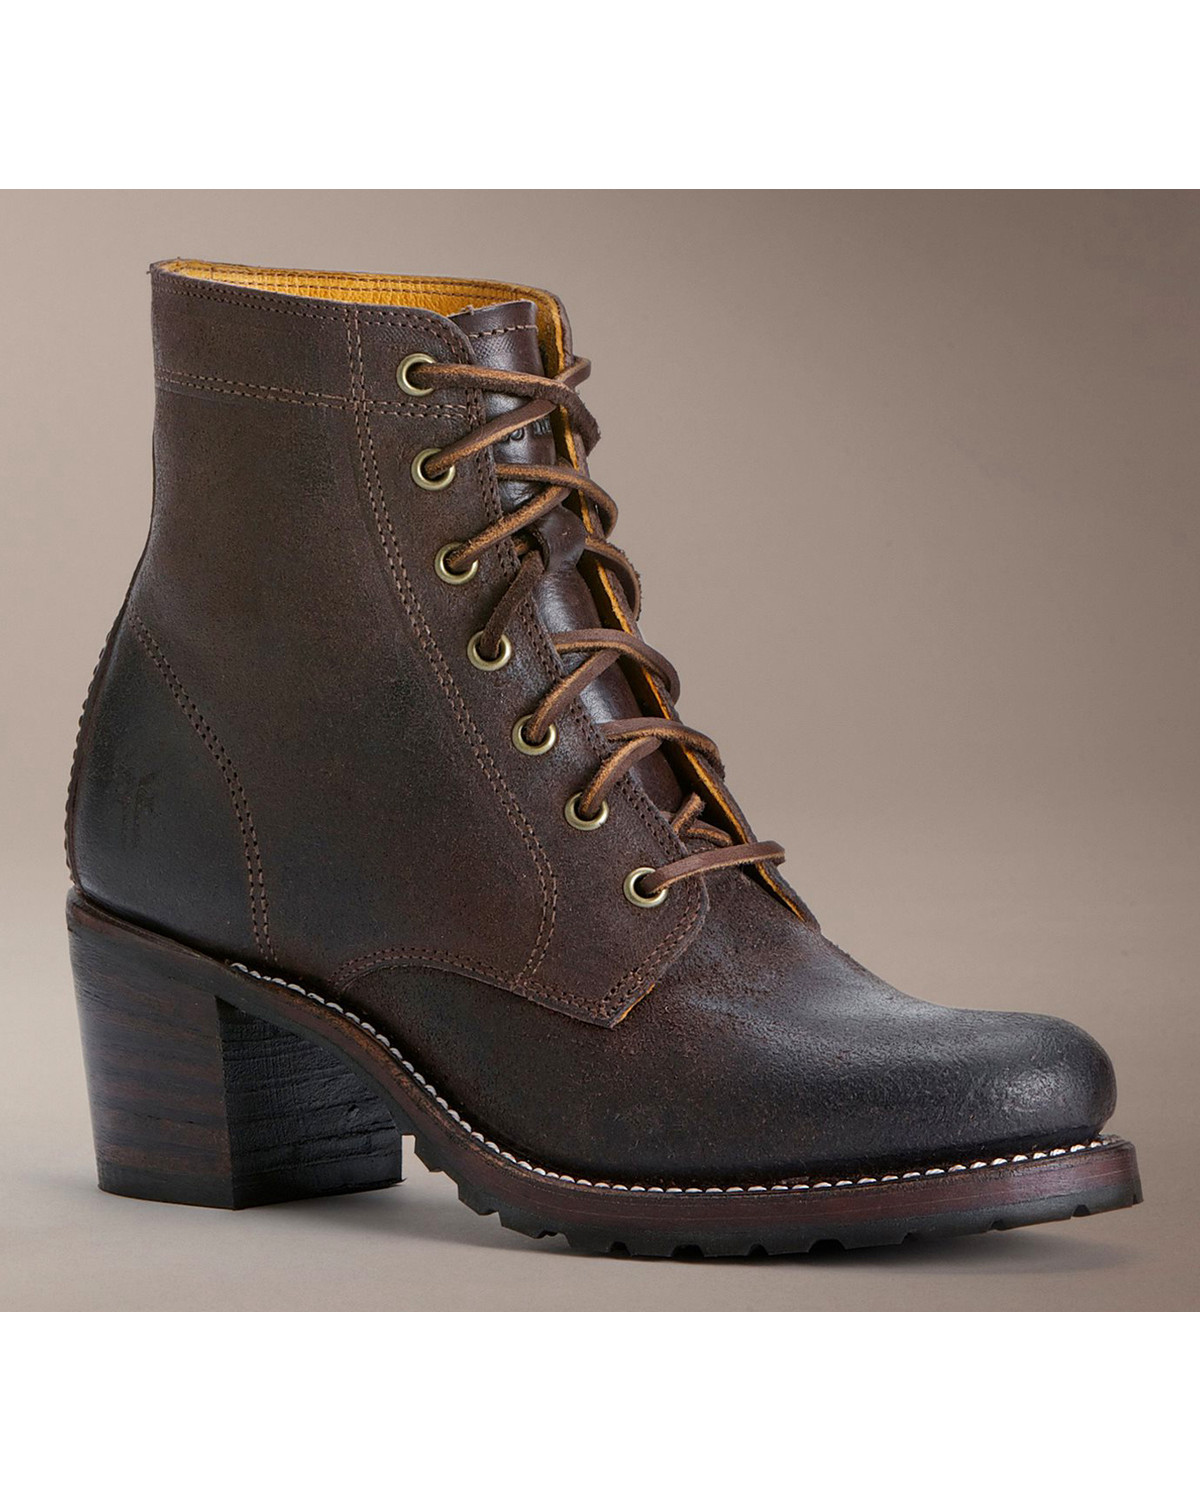 Frye Sabrina 6G Lace-Up Oiled Suede